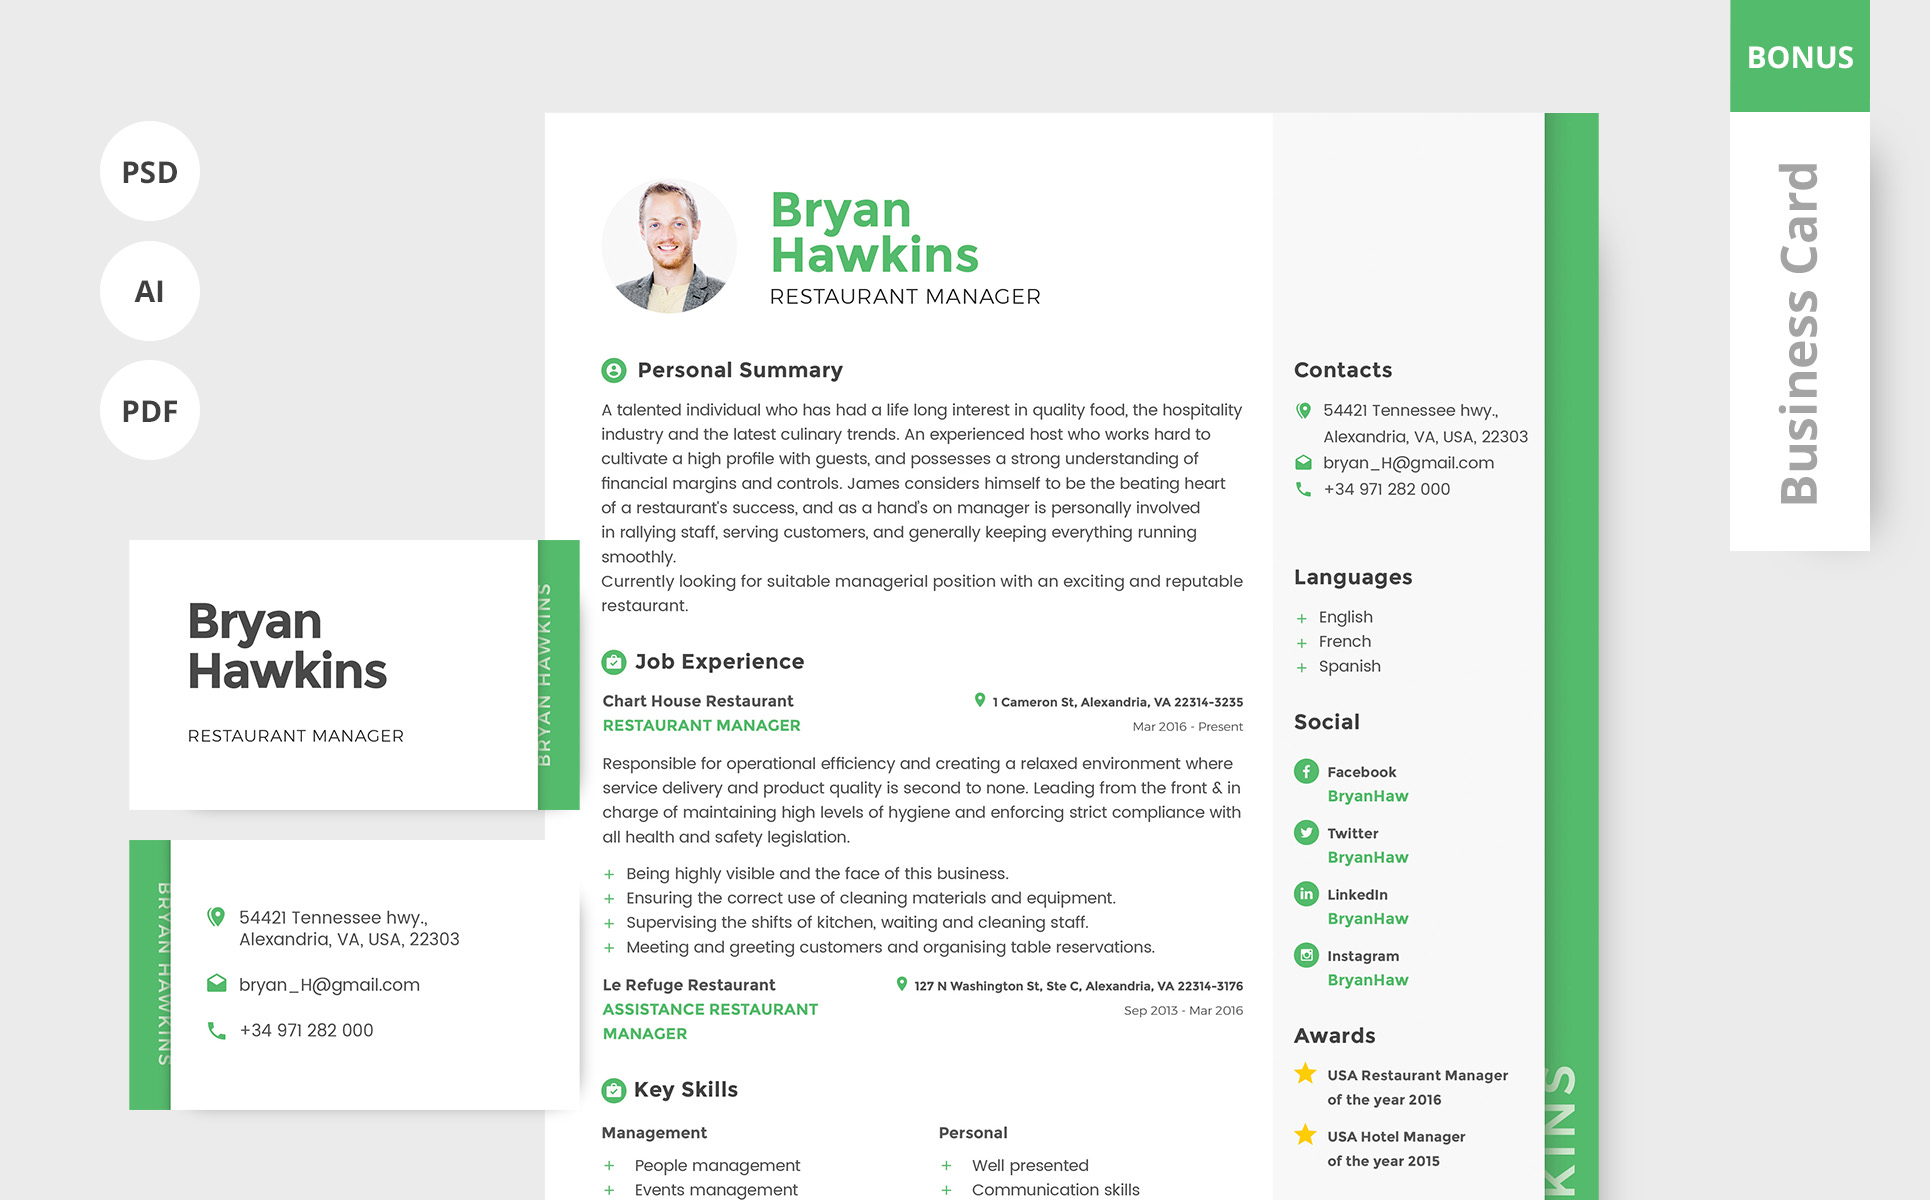 Bryan Hawkins - Restaurant Manager Printable Resume Templates Big Screenshot